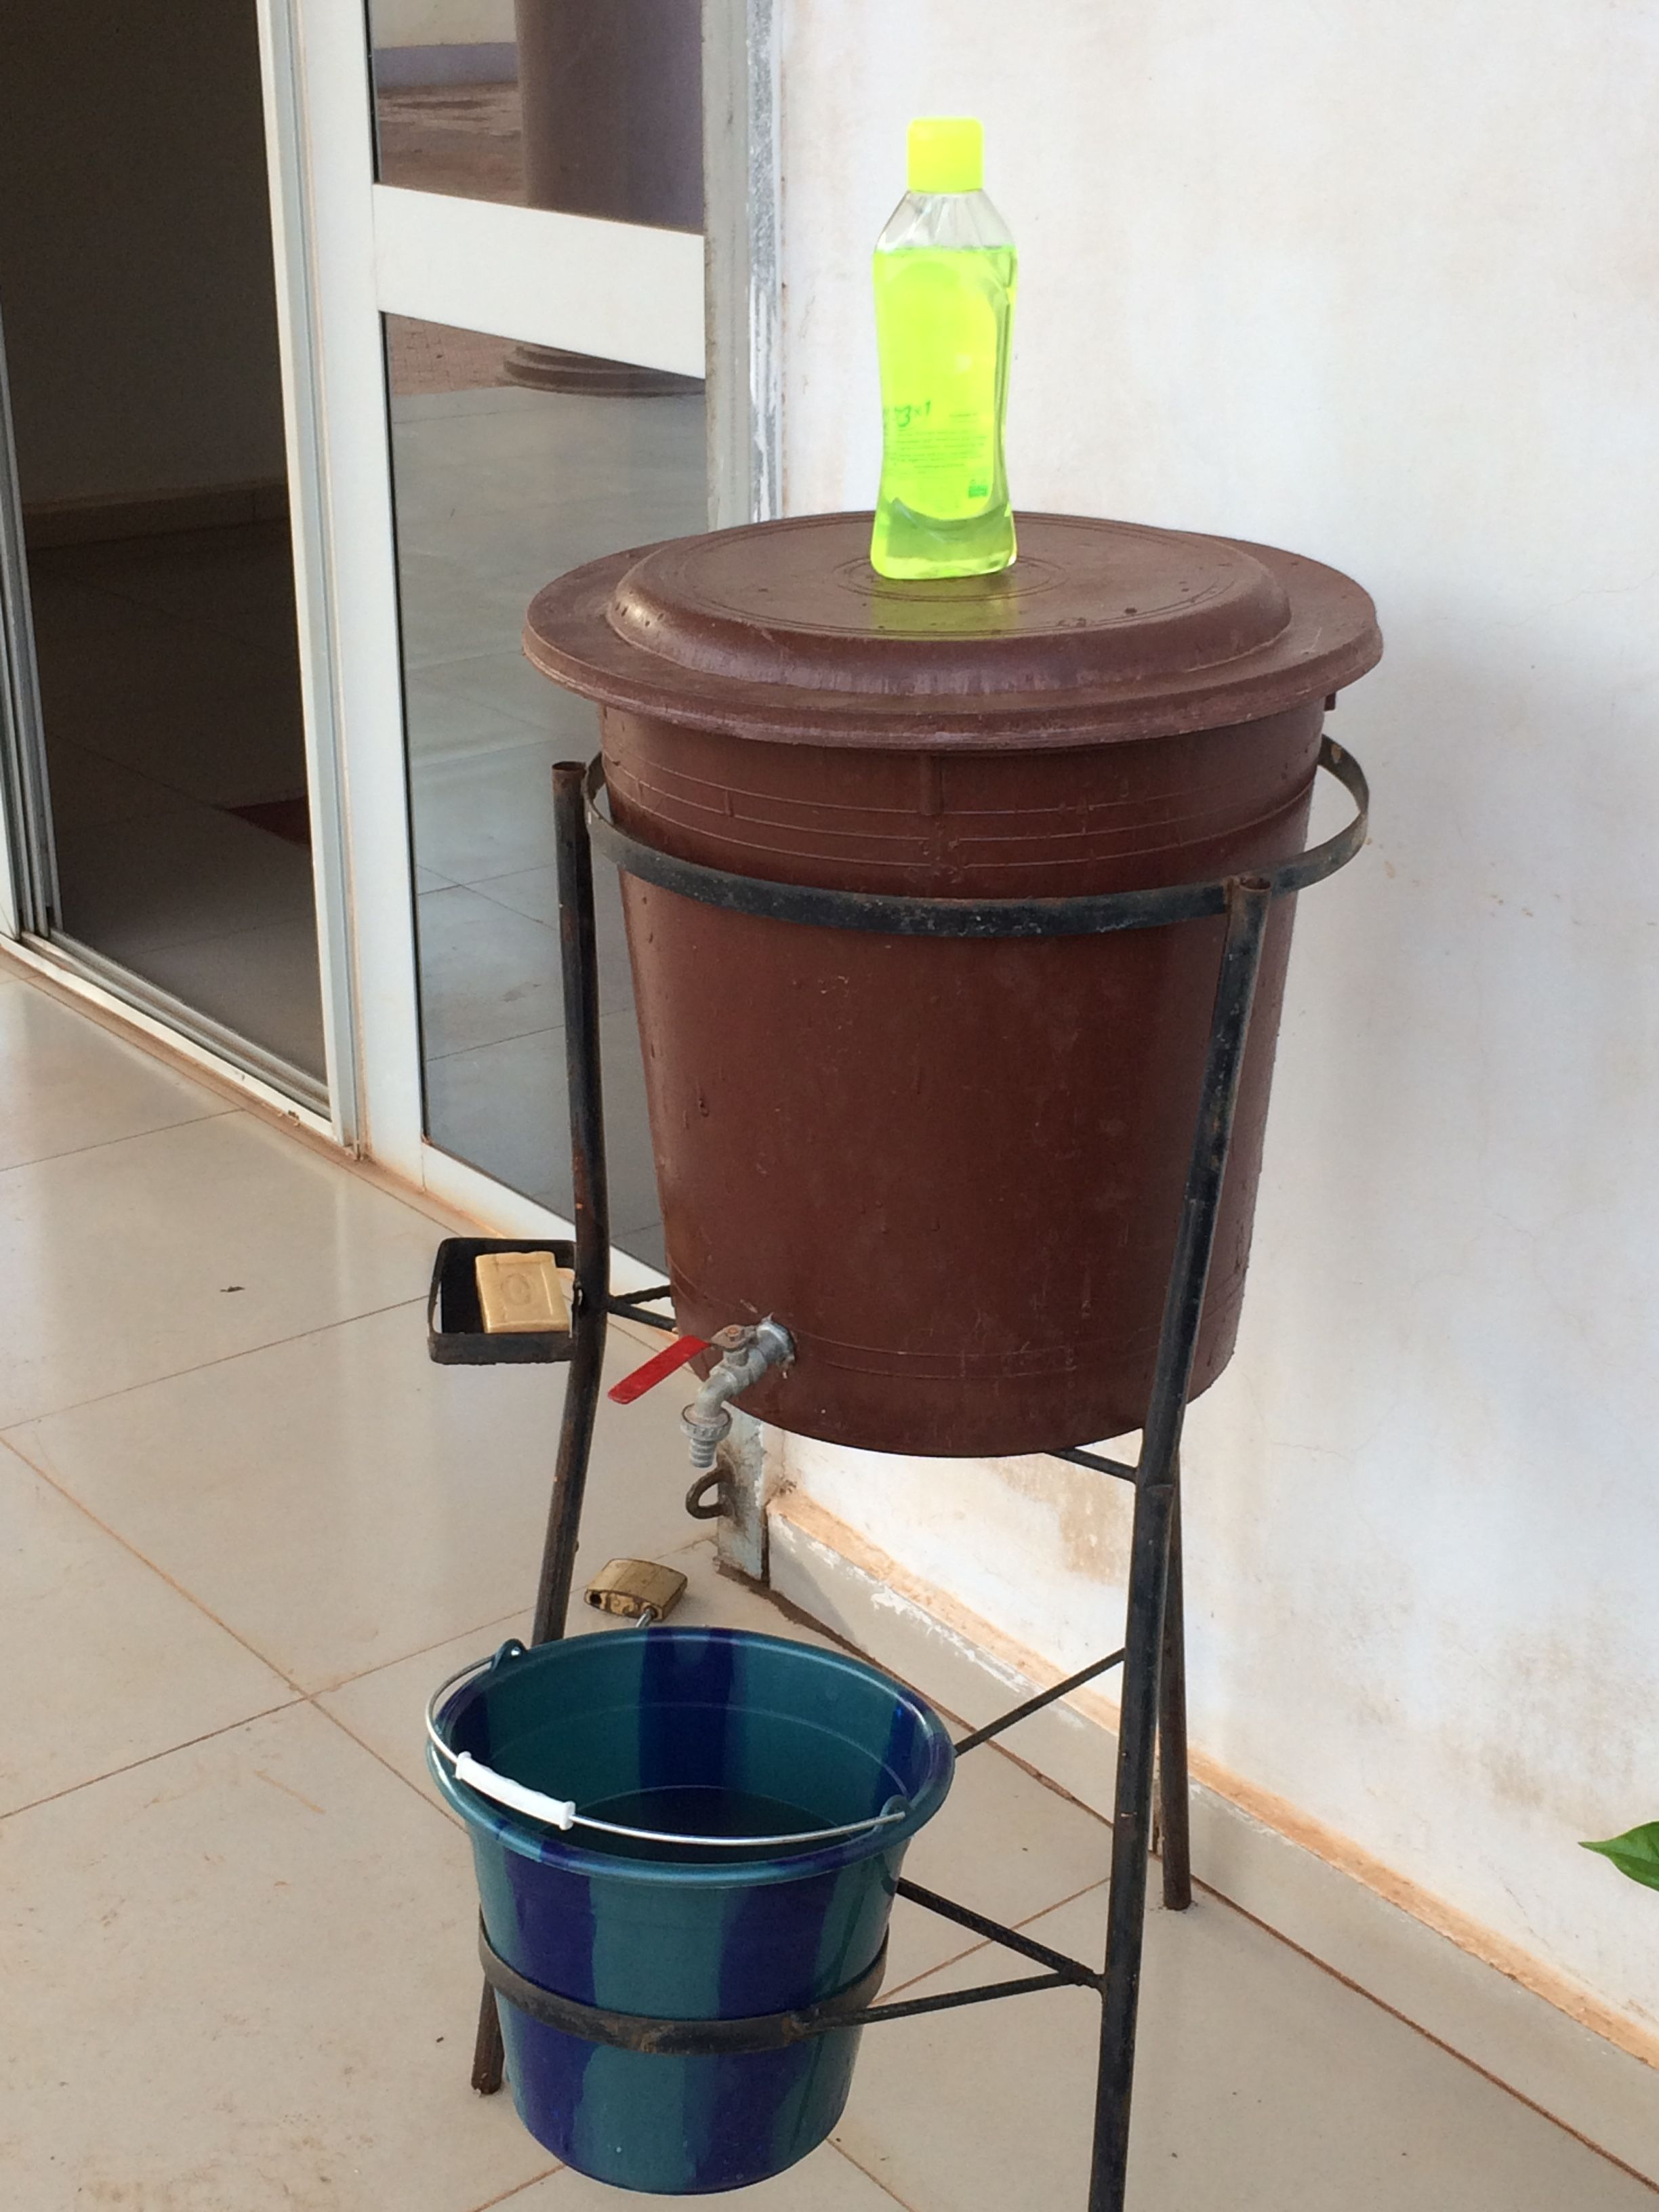 Makeshift but practical hand-washing device